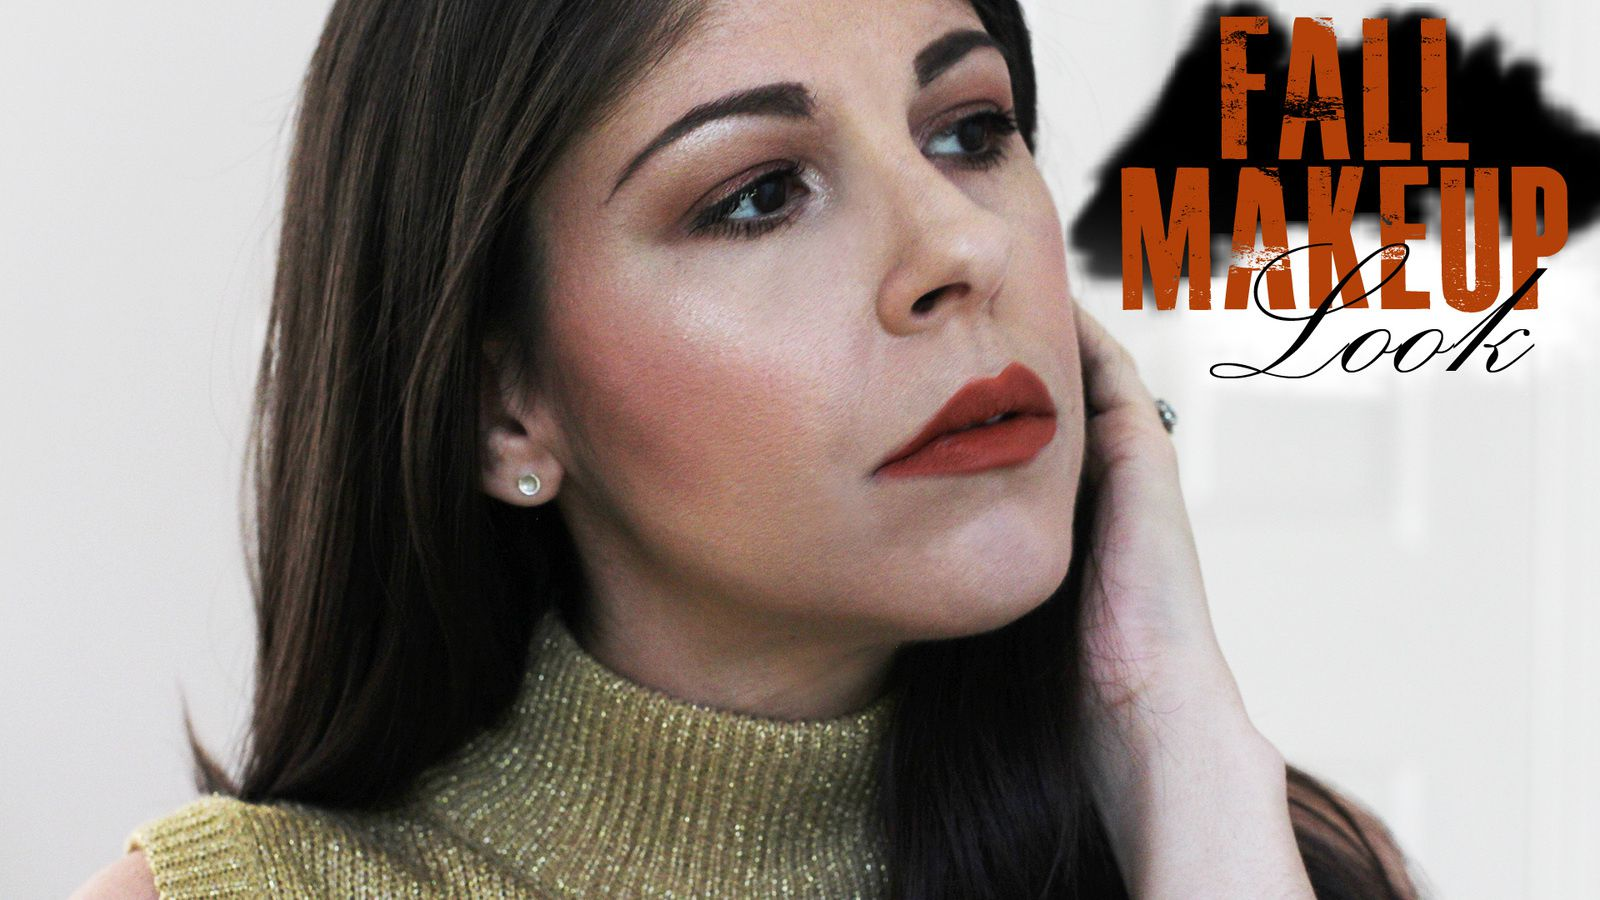 Fall Makeup Look | Burnt Oranges